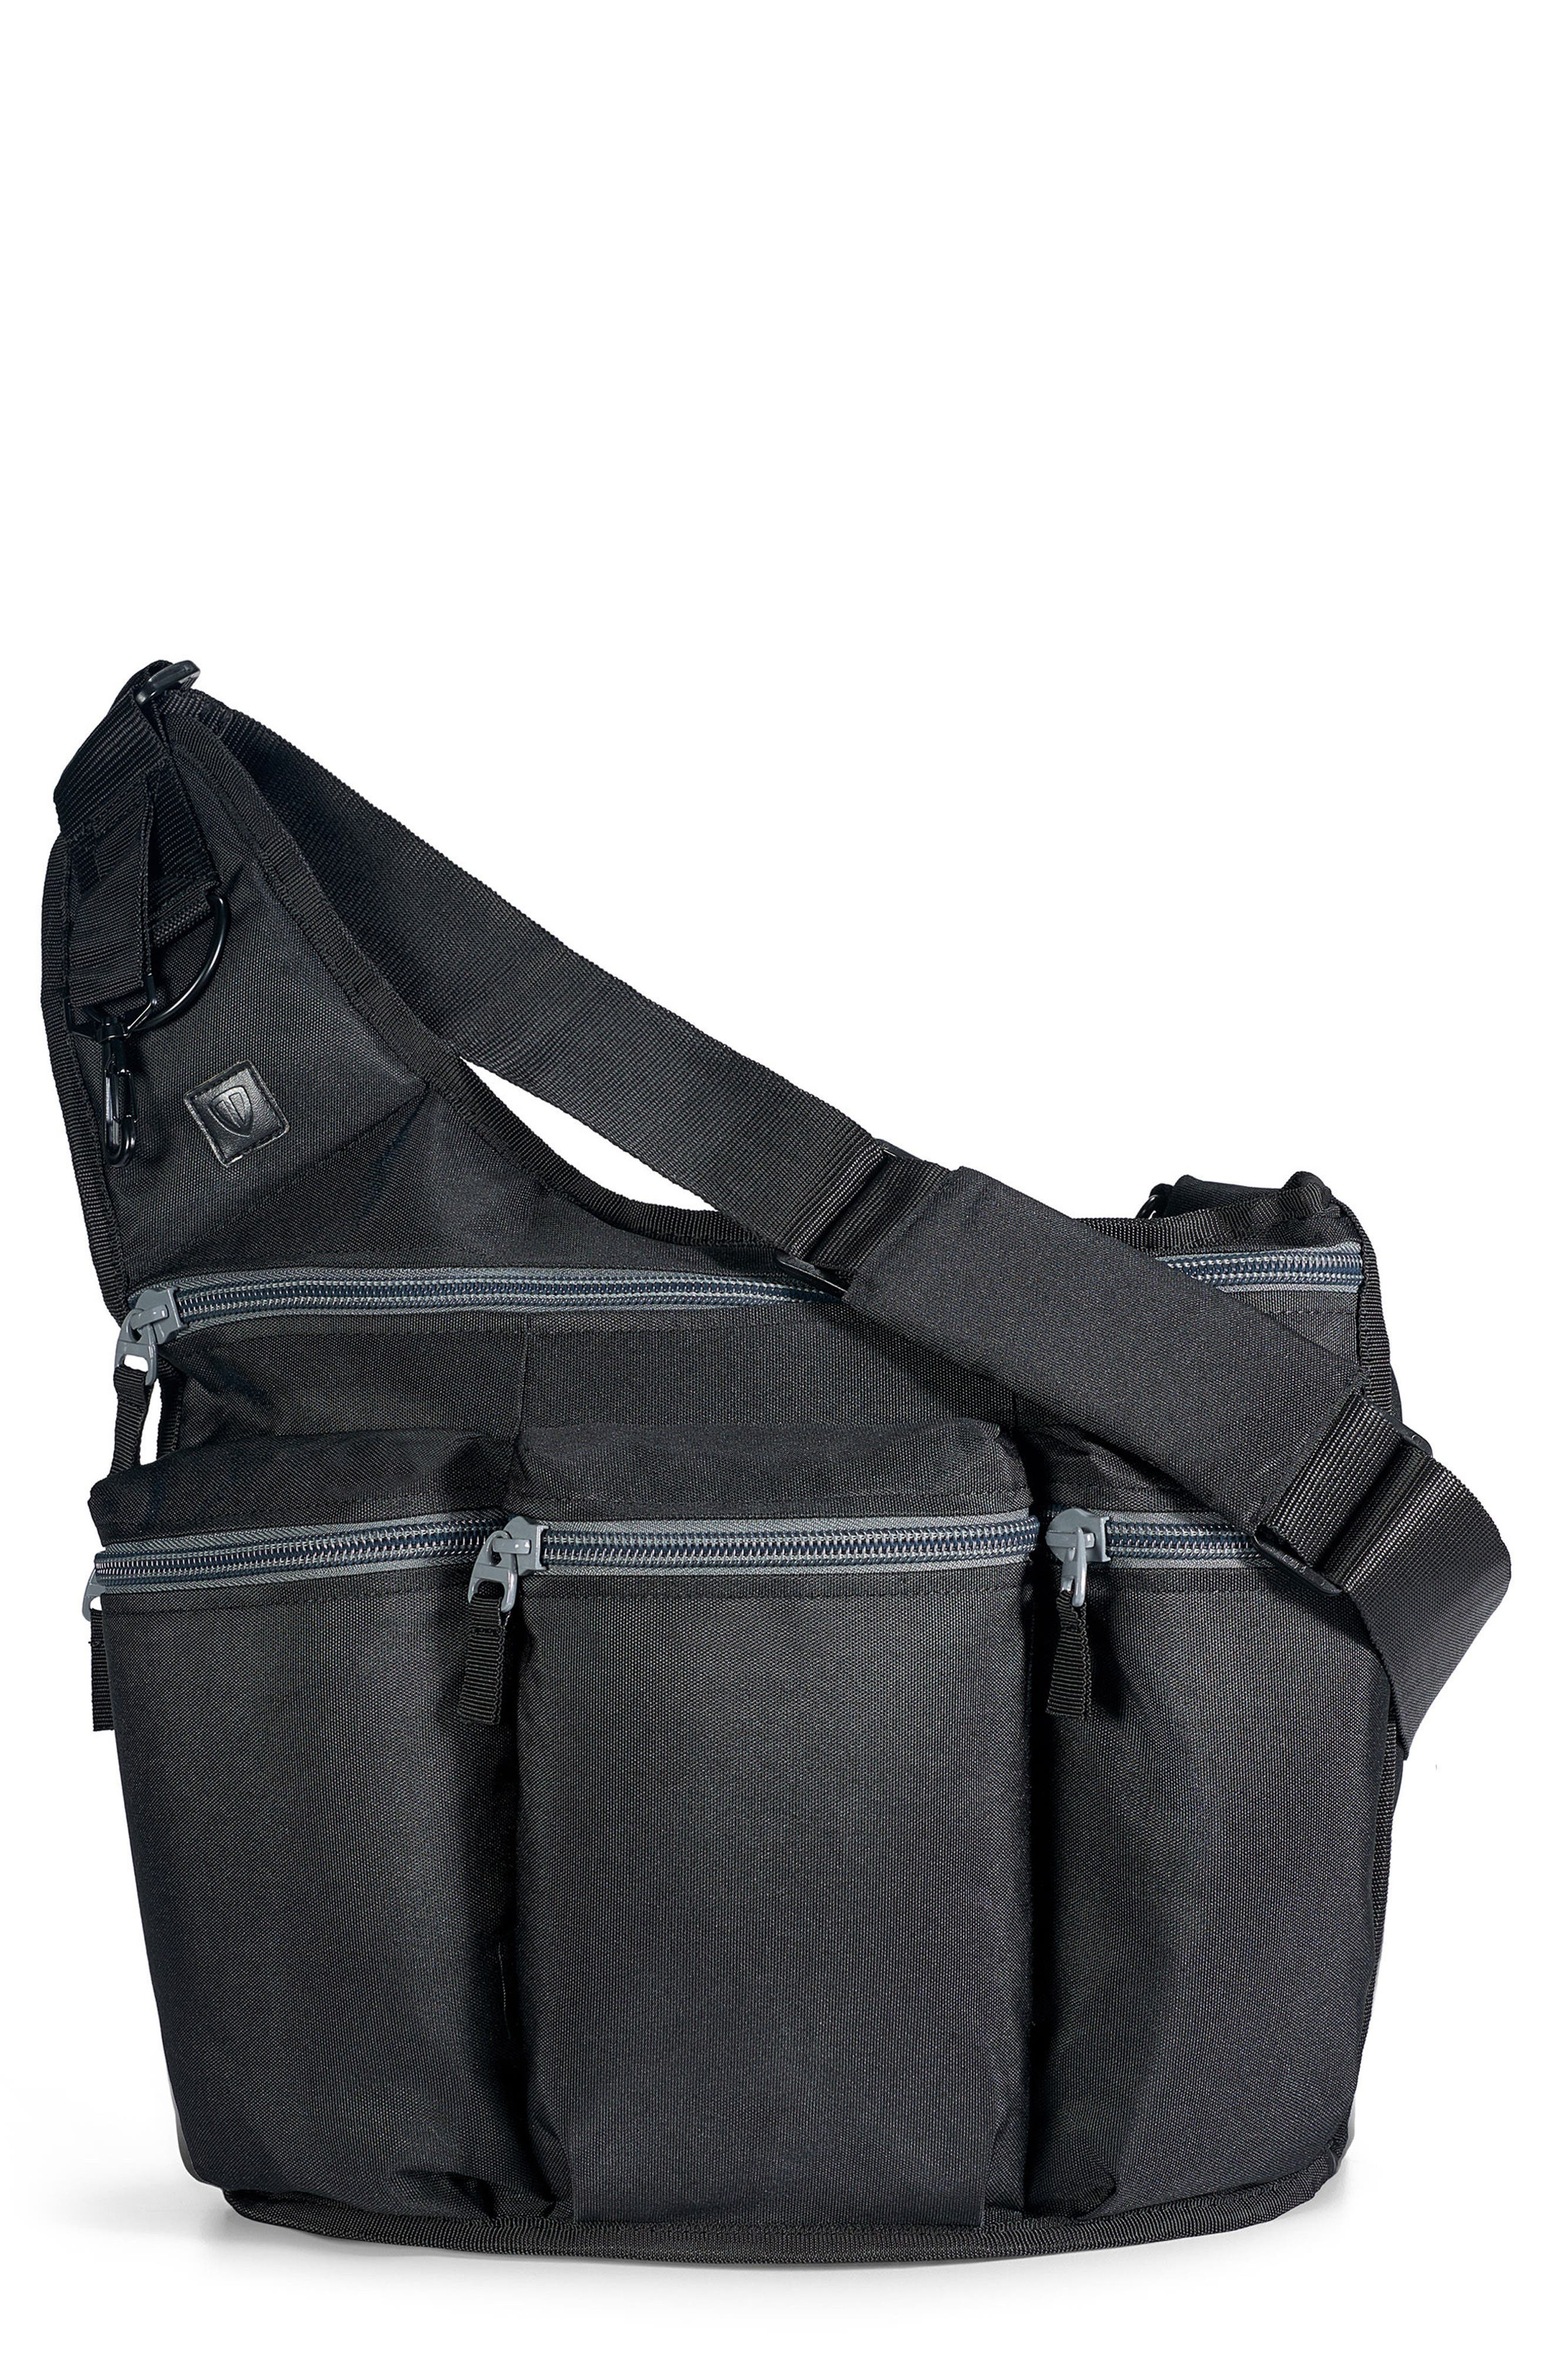 Main Image - Diaper Dude Shoulder Messenger Bag